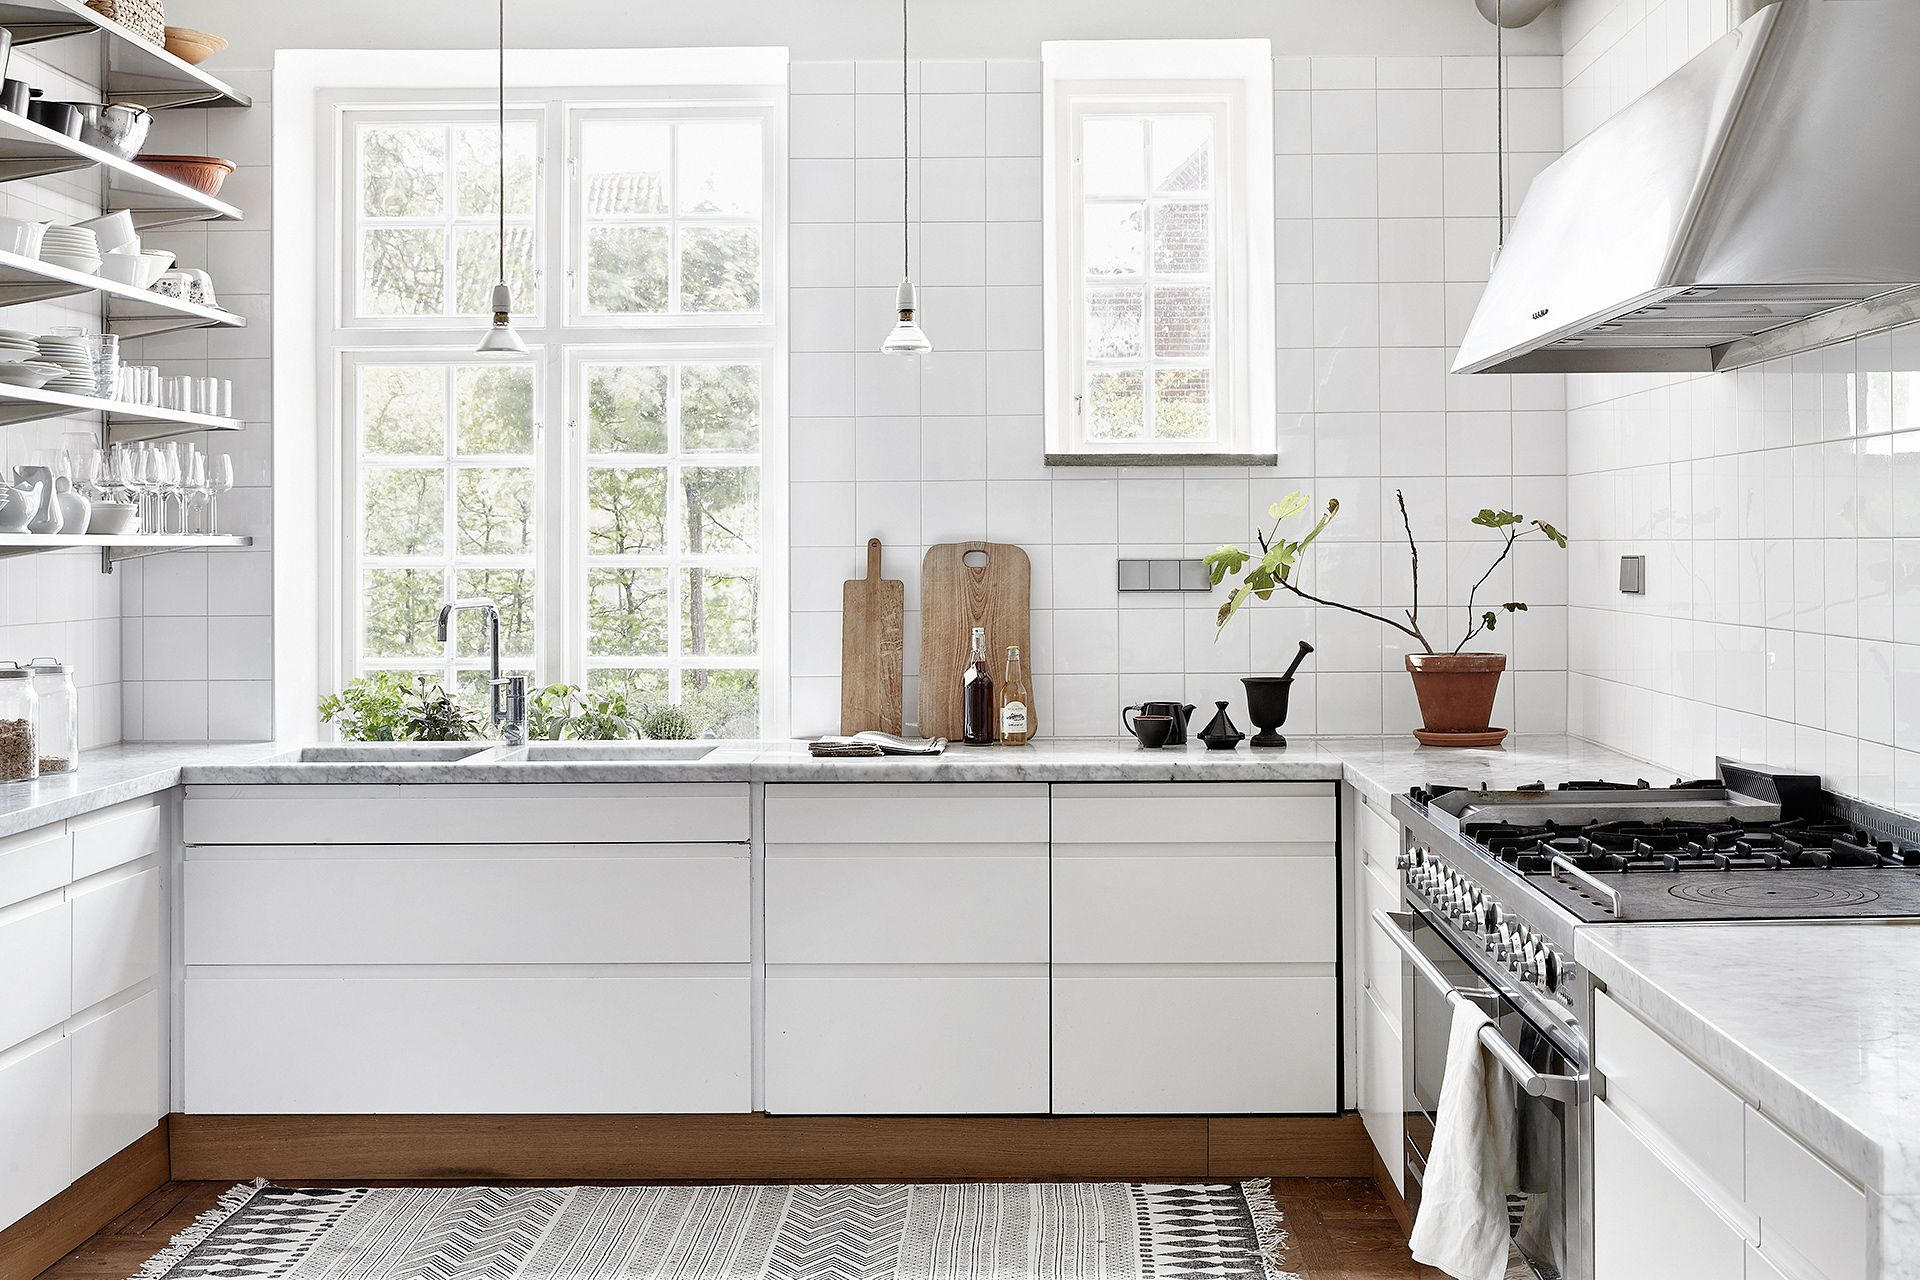 Minimal Kitchens - | Country houses, Nordic kitchen and Kitchens